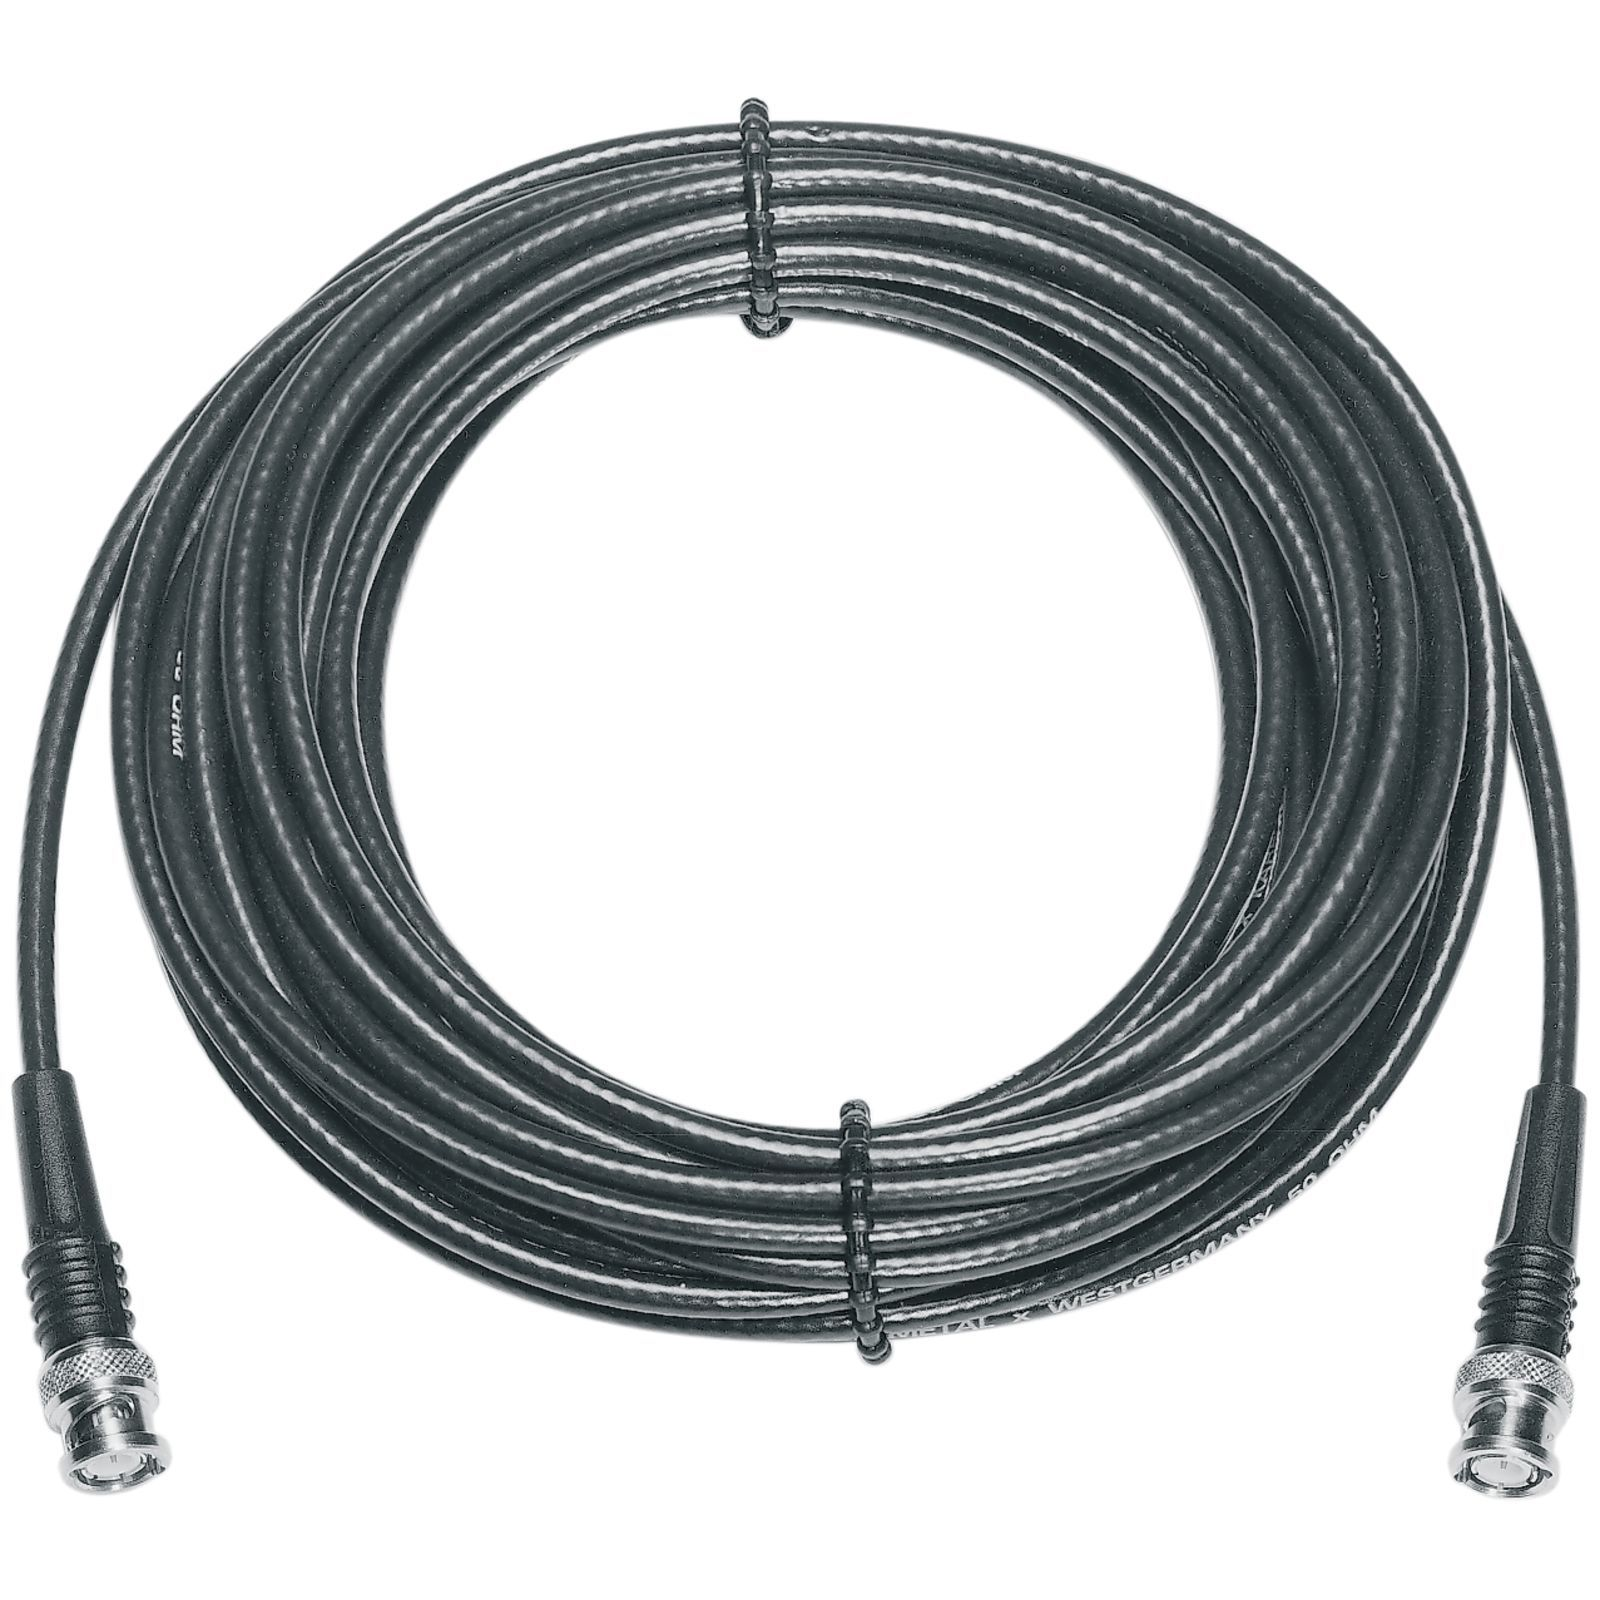 Sennheiser GZL 5000 A 10 BNC 10m Connecting Cable Produktbillede